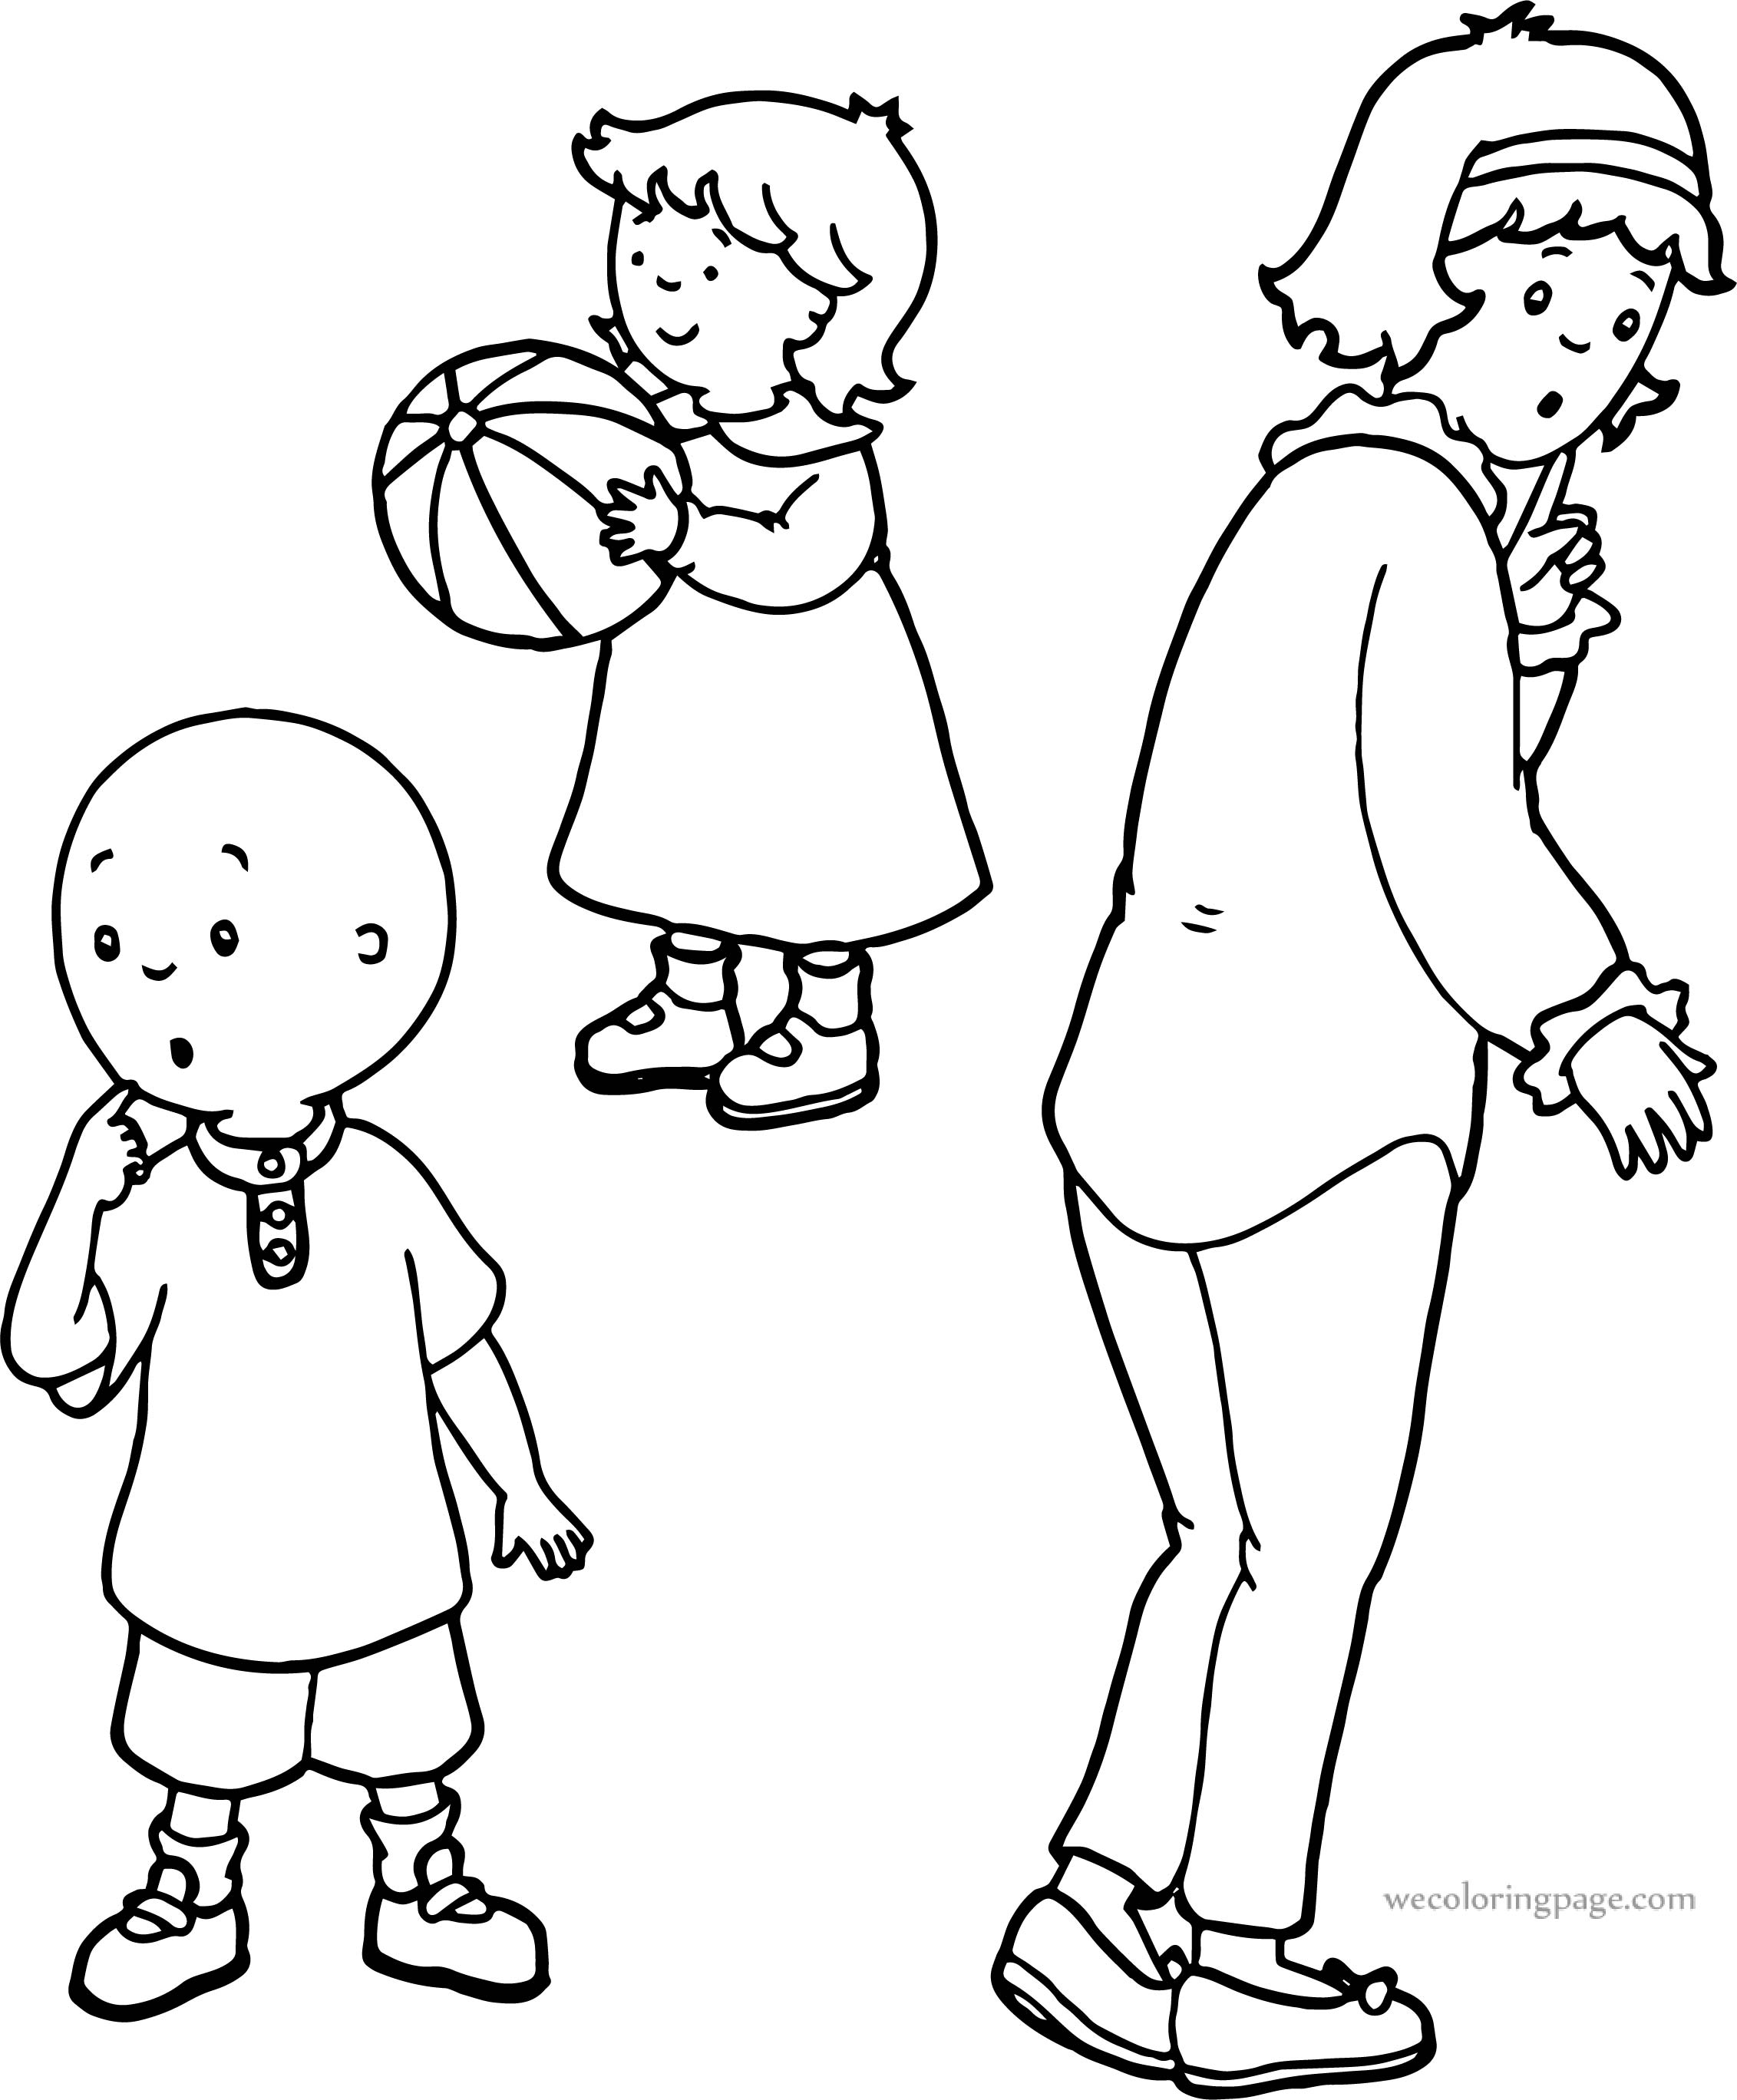 Thinking,Caillou,And,Mother,Together,Sister,Coloring,Page